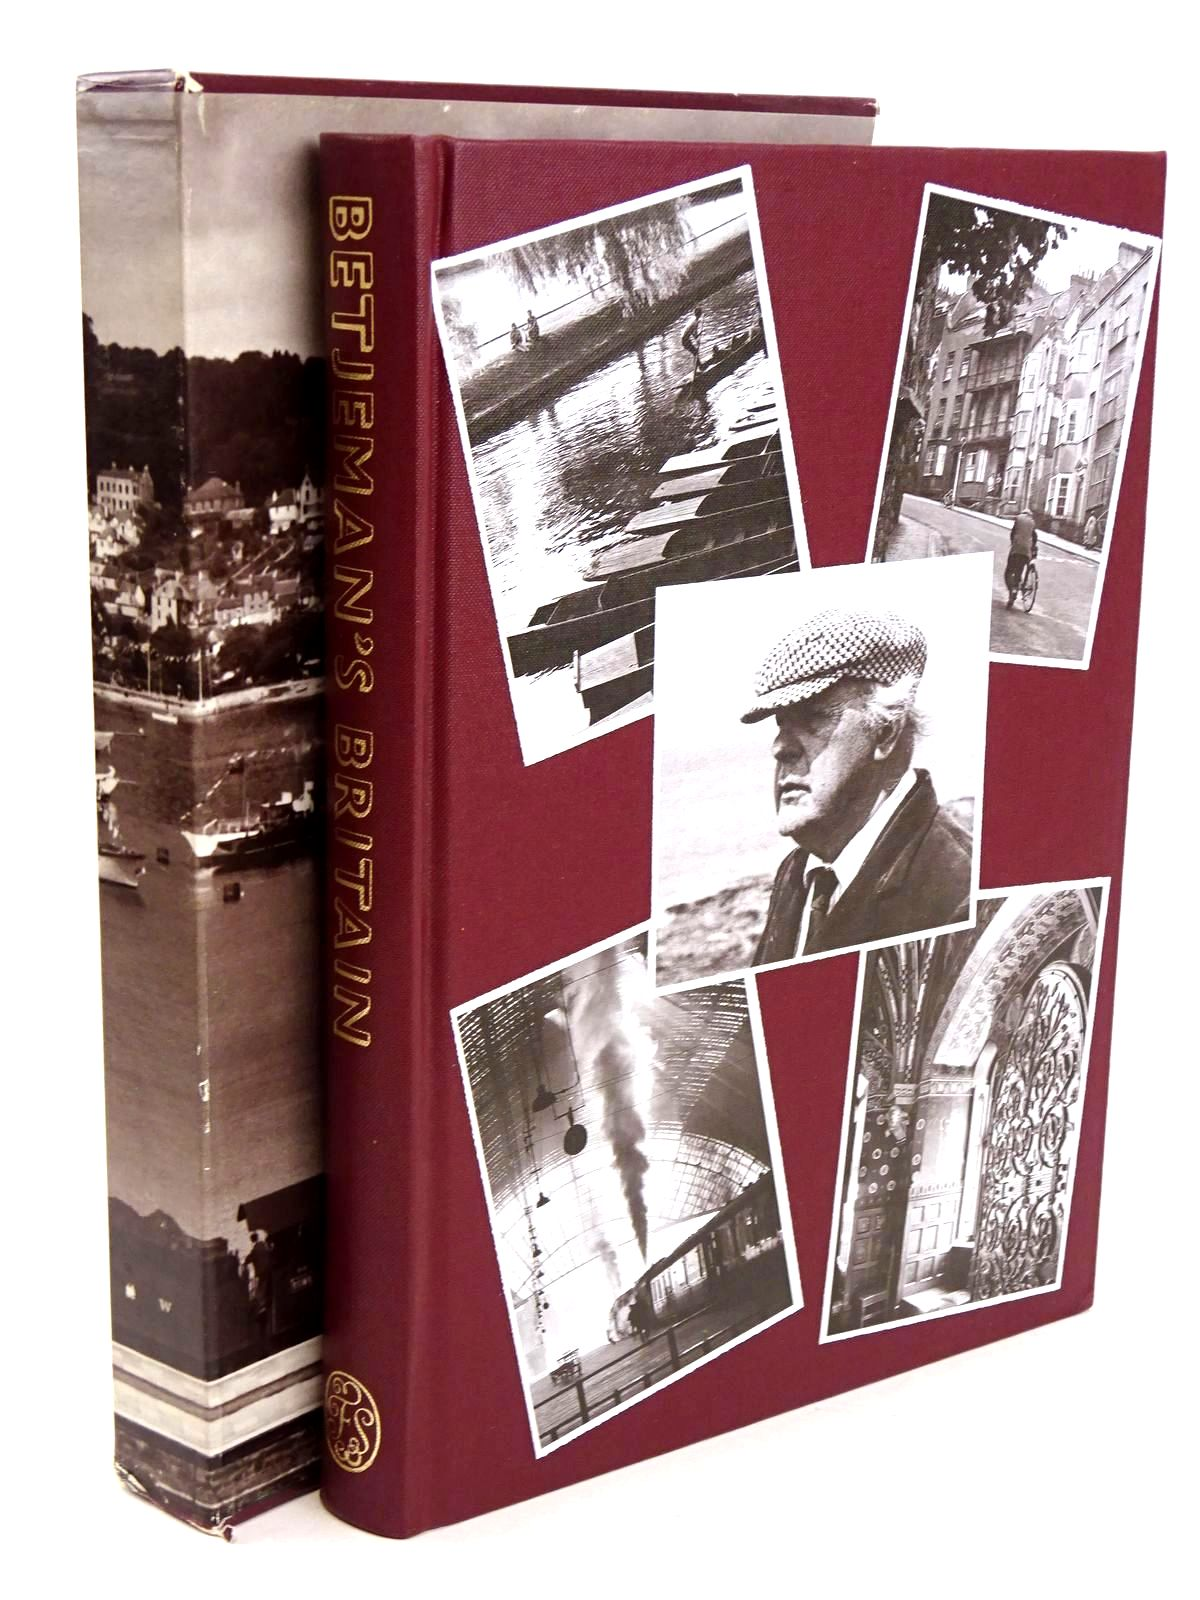 Photo of BETJEMAN'S BRITAIN written by Betjeman, John Green, Candida Lycett published by Folio Society (STOCK CODE: 1318484)  for sale by Stella & Rose's Books